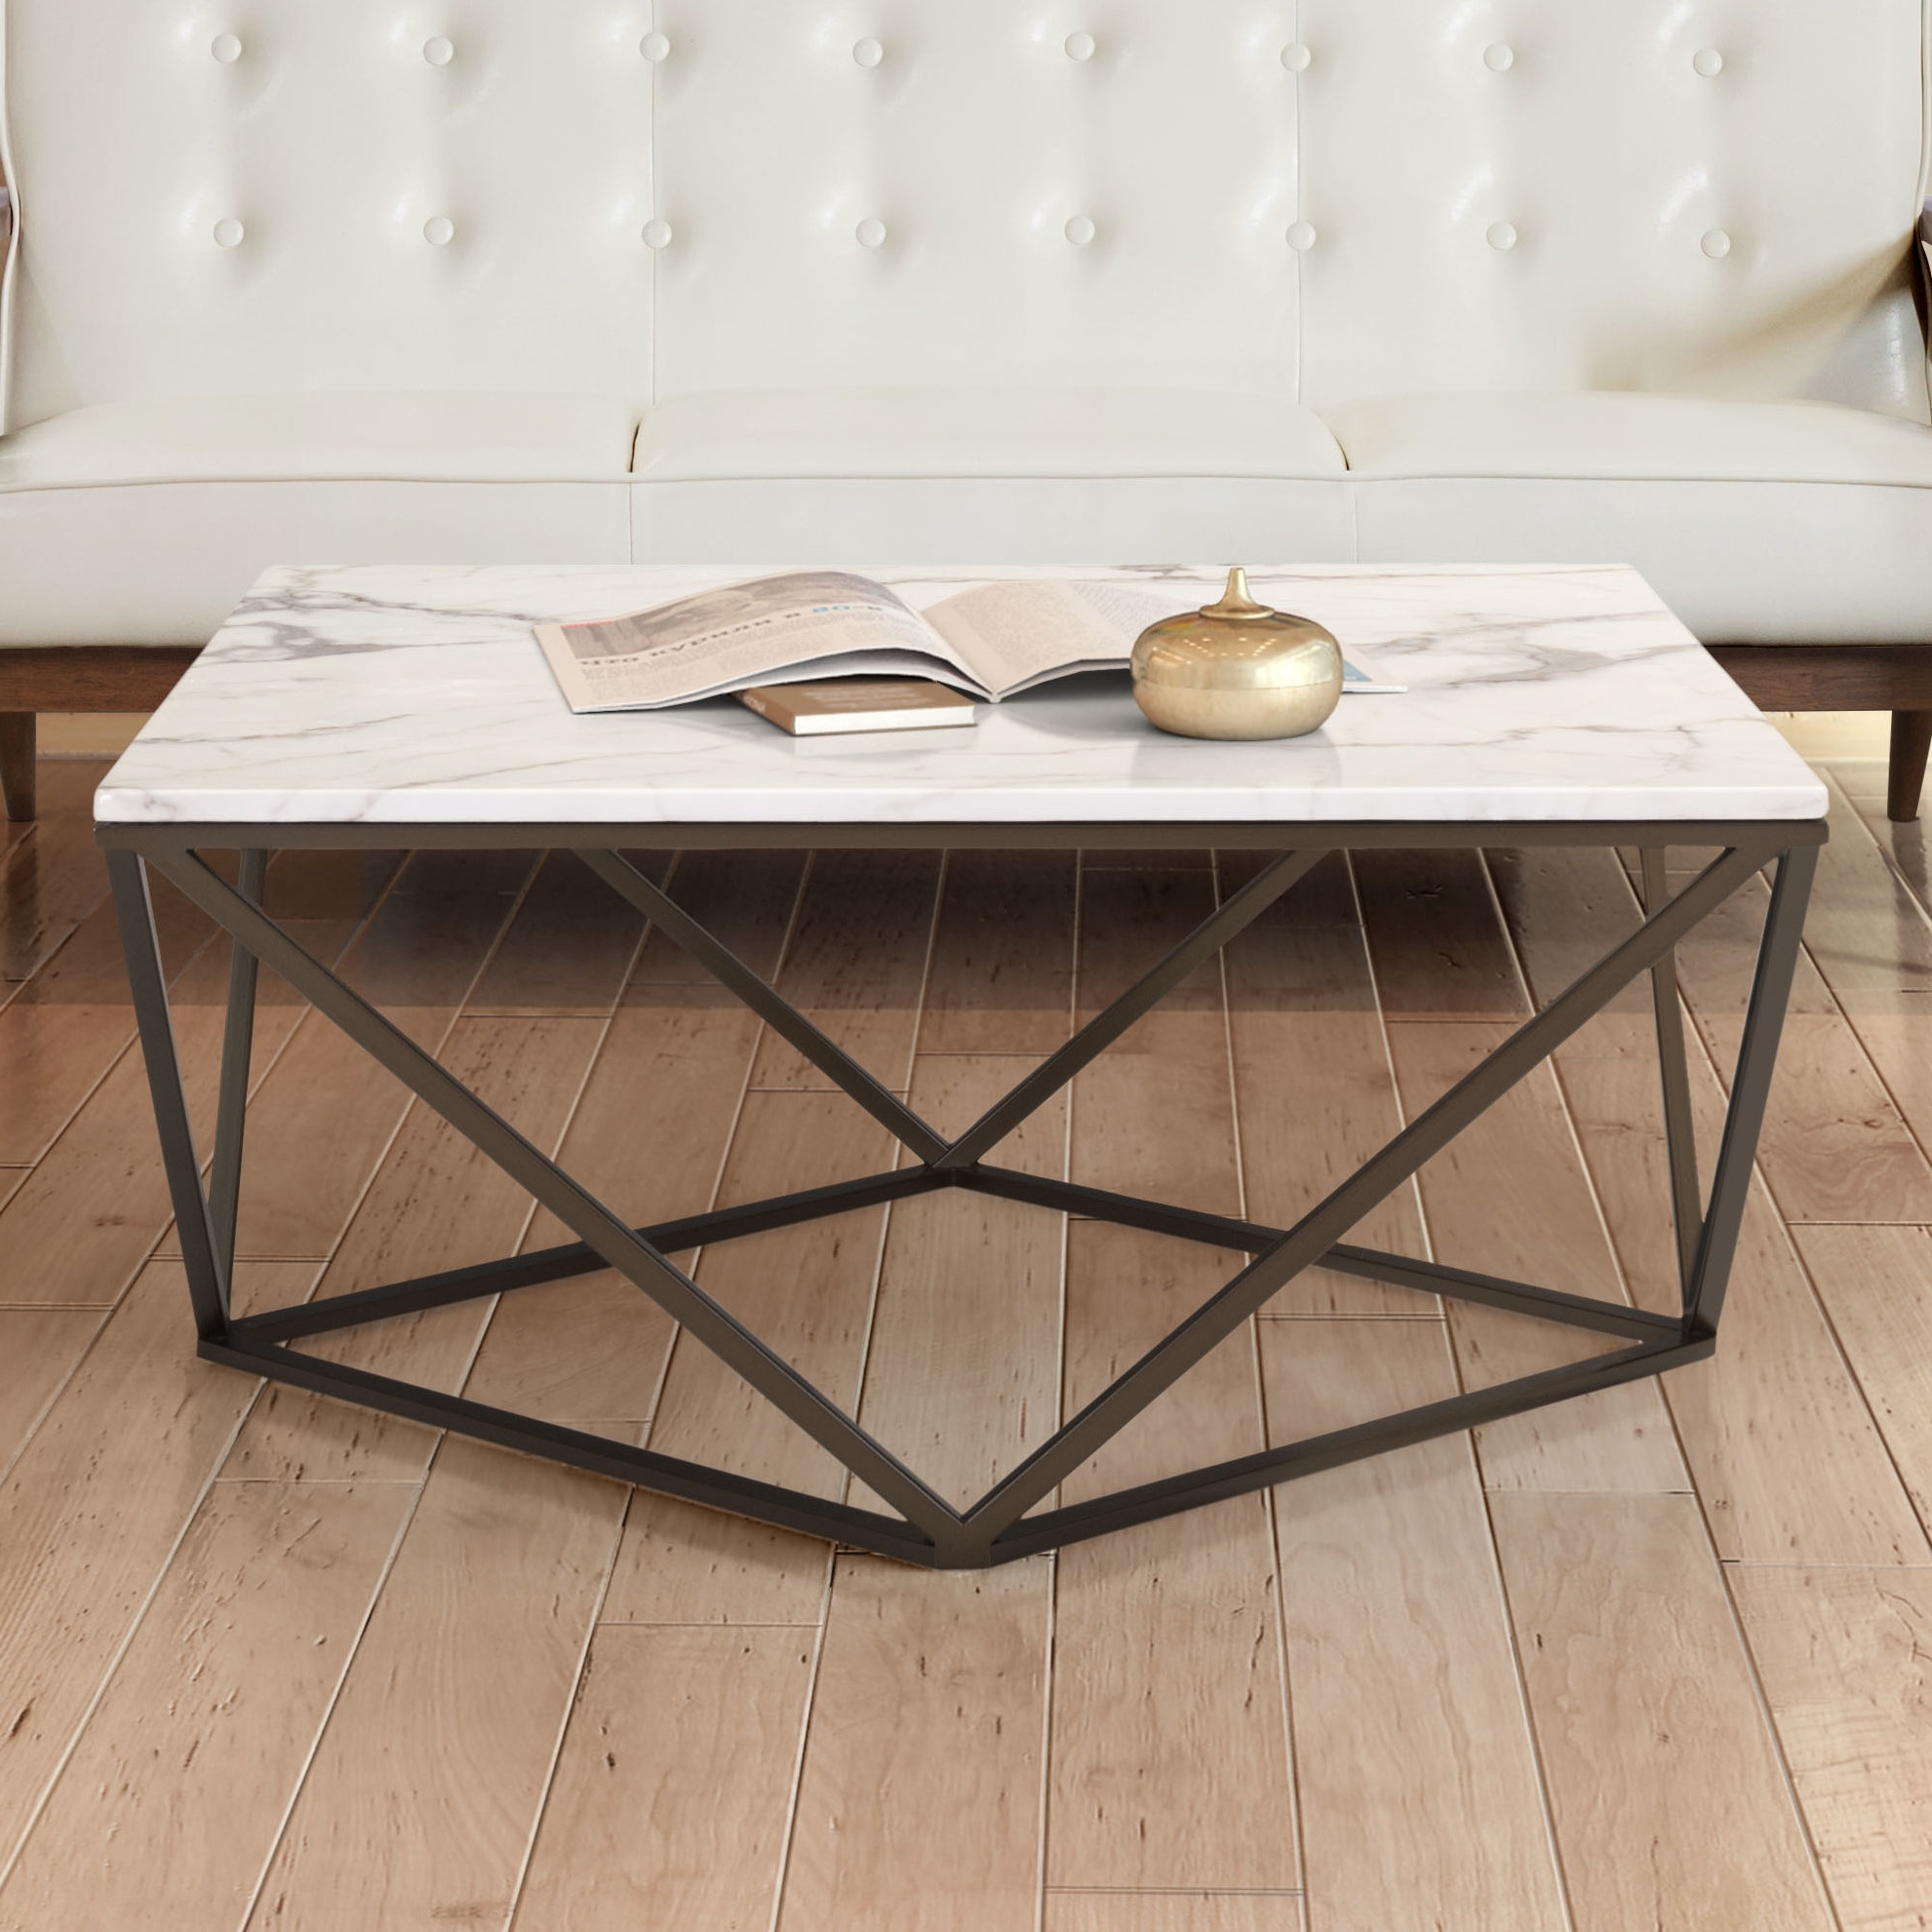 Wayfair For Most Current Iron Marble Coffee Tables (View 18 of 20)